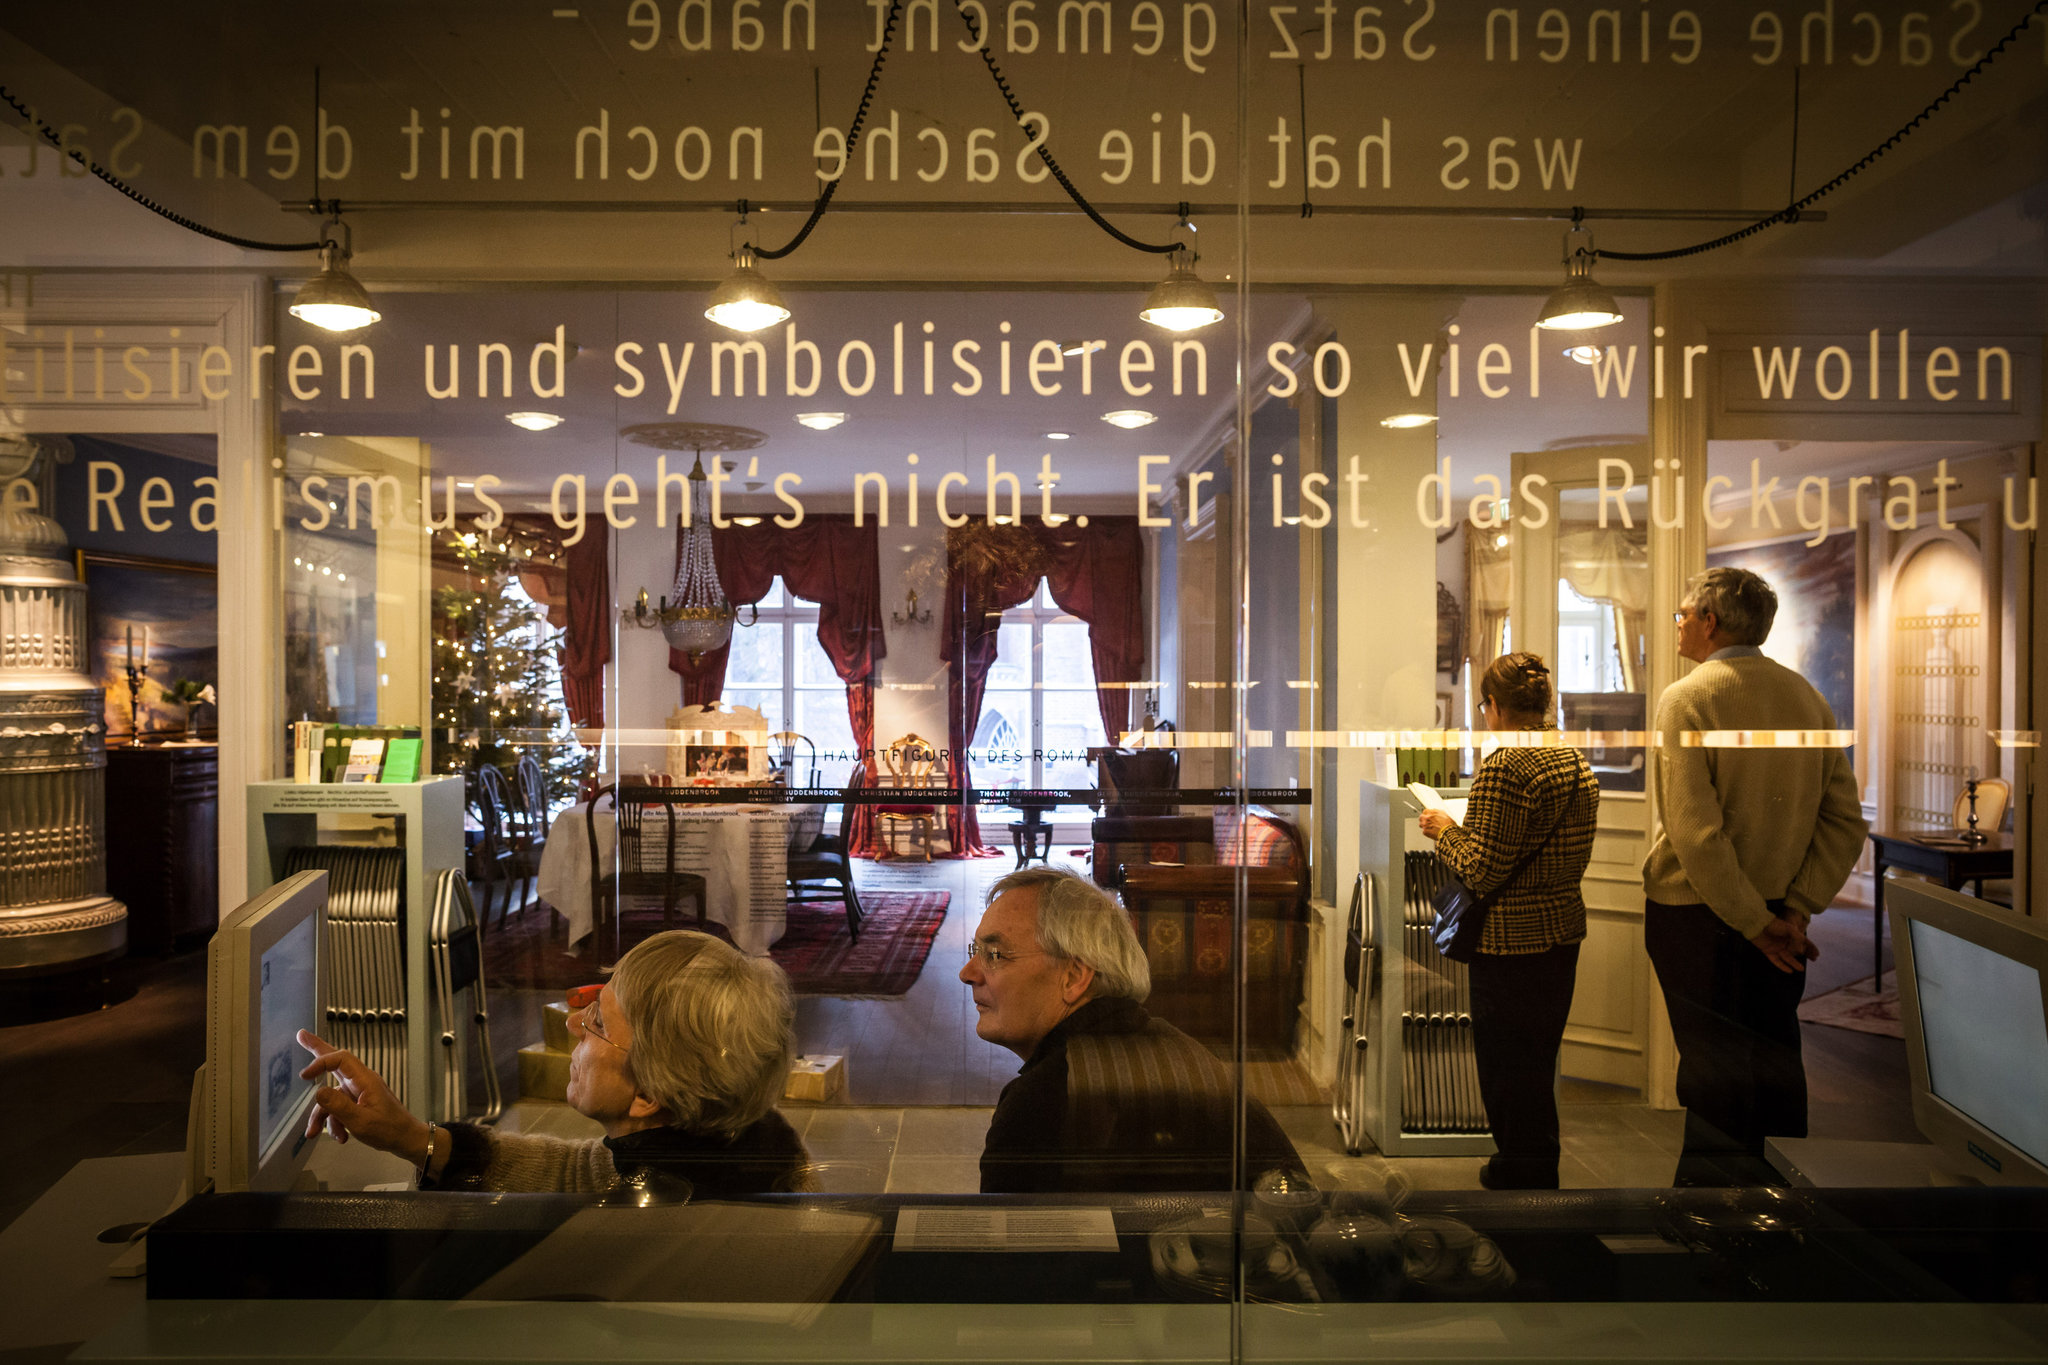 New Yorker Lübeck Museum Seeks To Update Thomas Mann For Age Of Texting